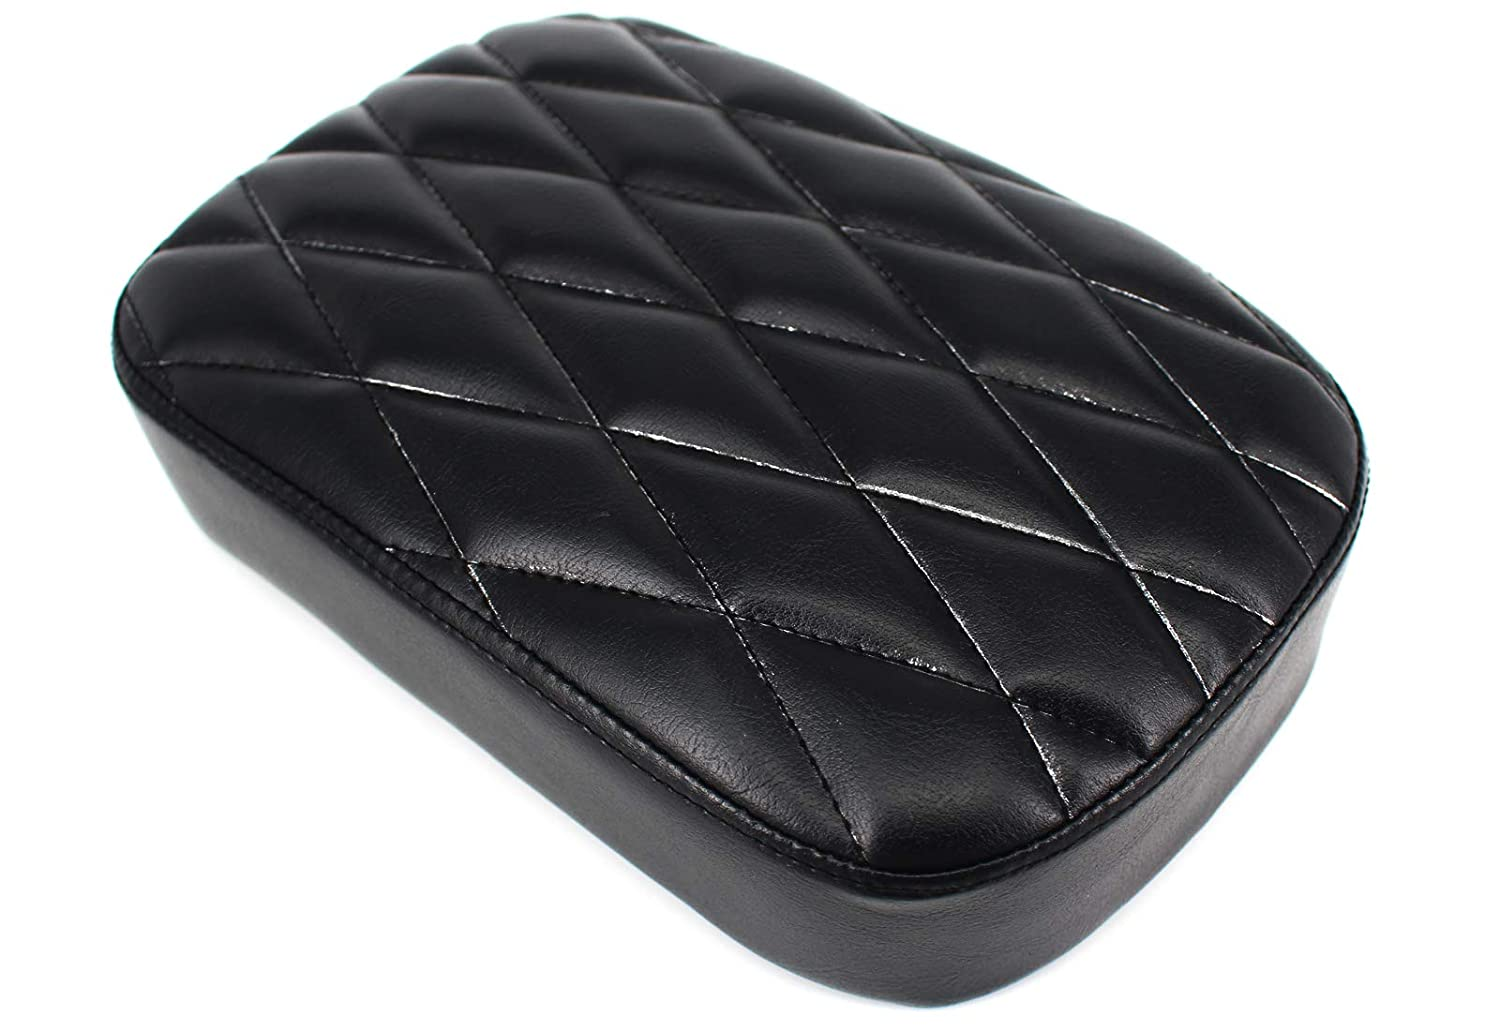 passager Pad Assise 8 Ventouse pour Harley Dyna Sportster Softail Touring XL 883 1200 Zhuanwantingzhi-R1200GS 1317